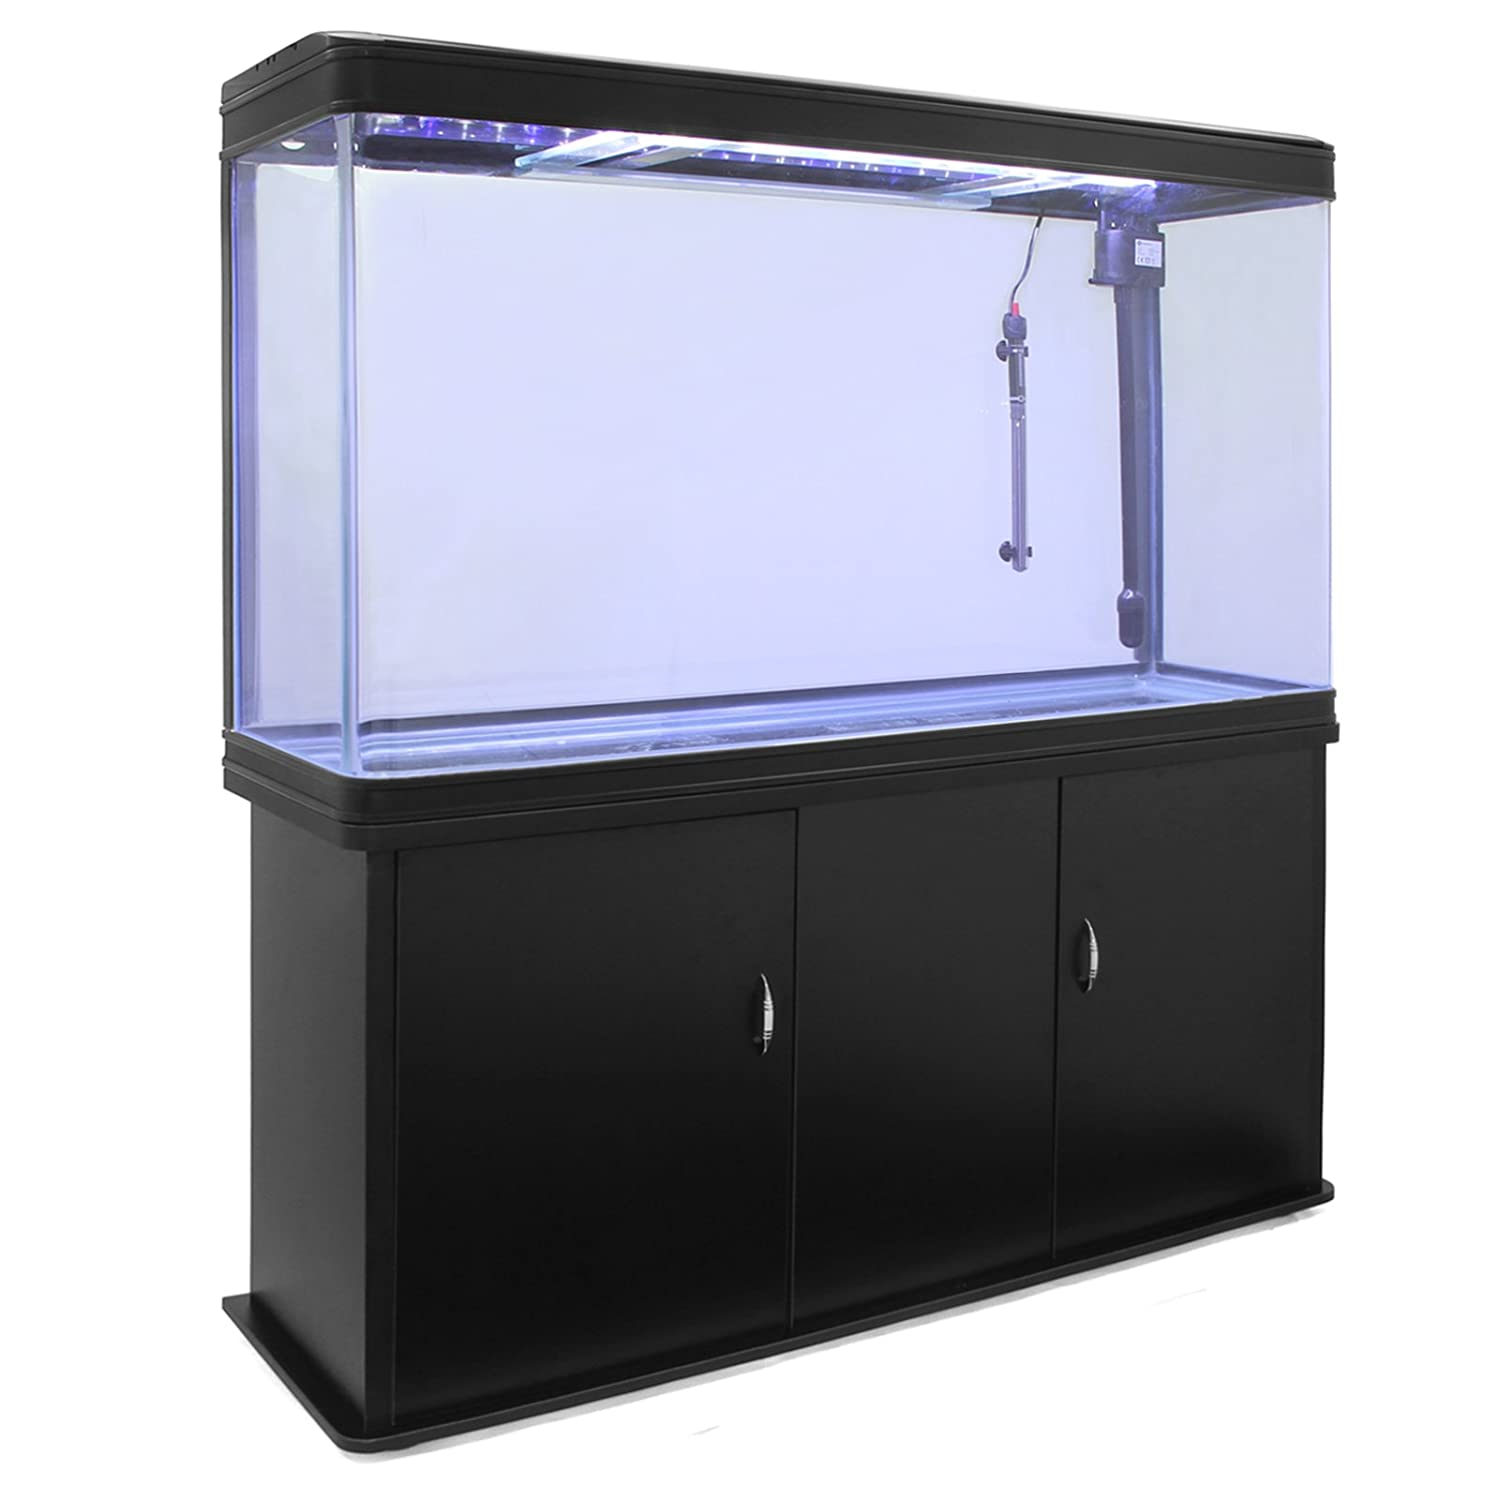 Fish tank stands uk 2 tier fish tank stand 4ft x 1ft for 20 gallon fish tank size